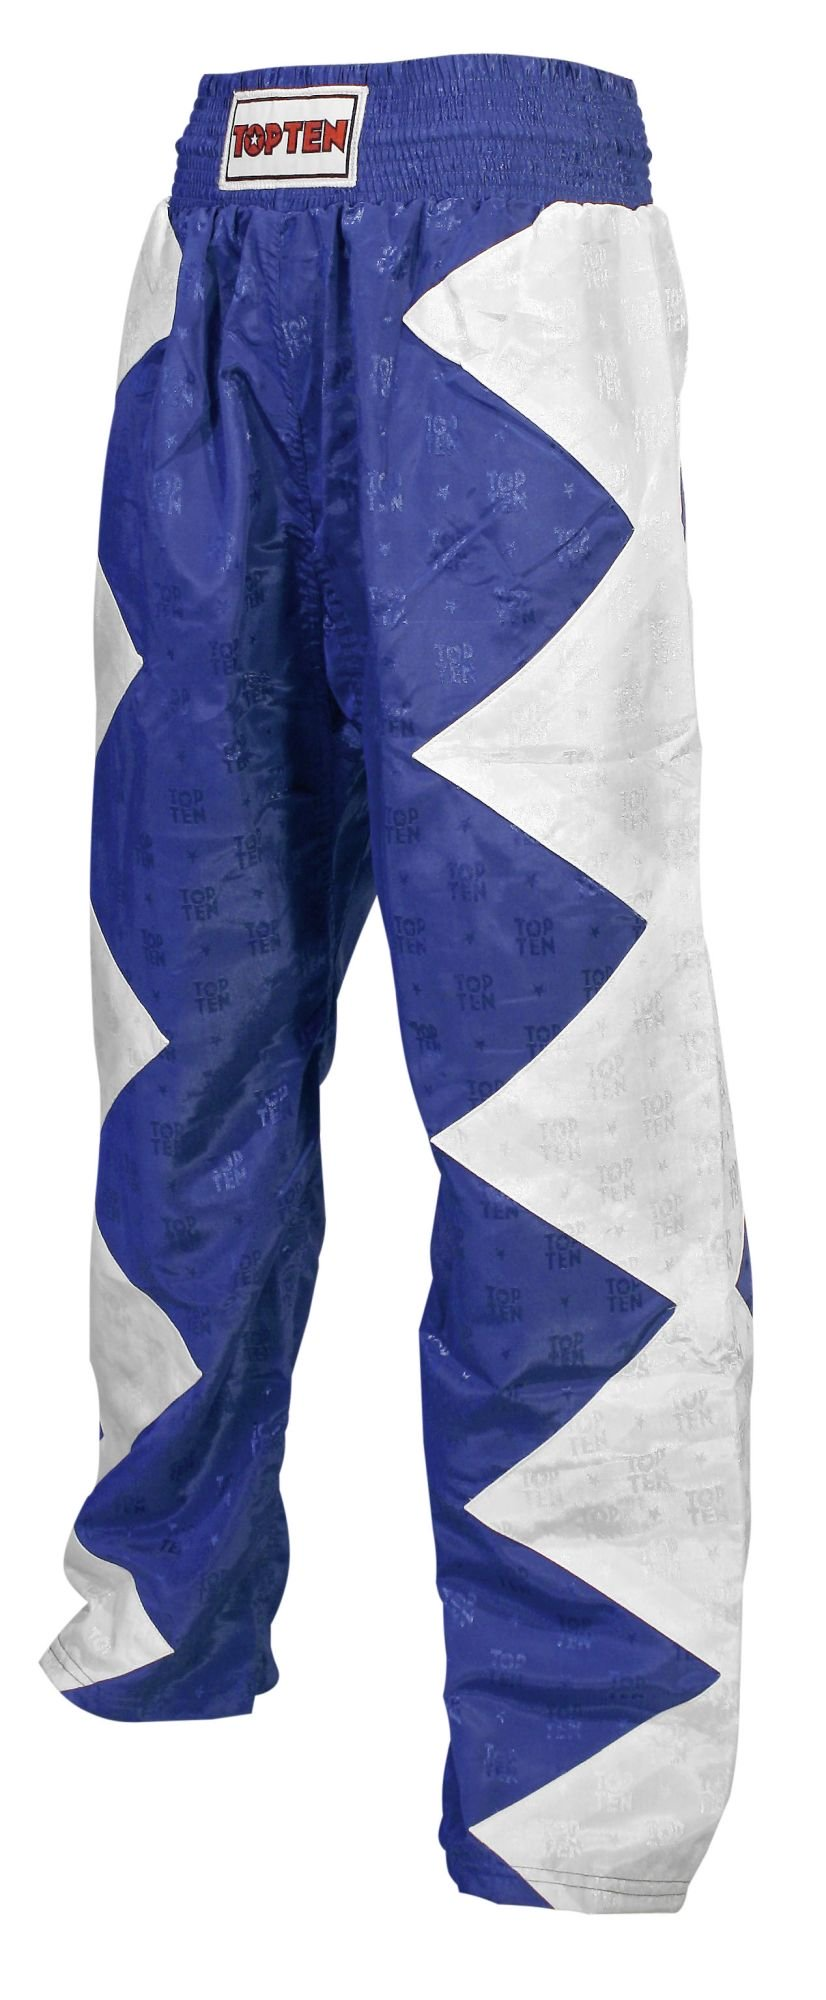 "TOP TEN Kickboksbroek ""Champ"" Wit - Blauw"